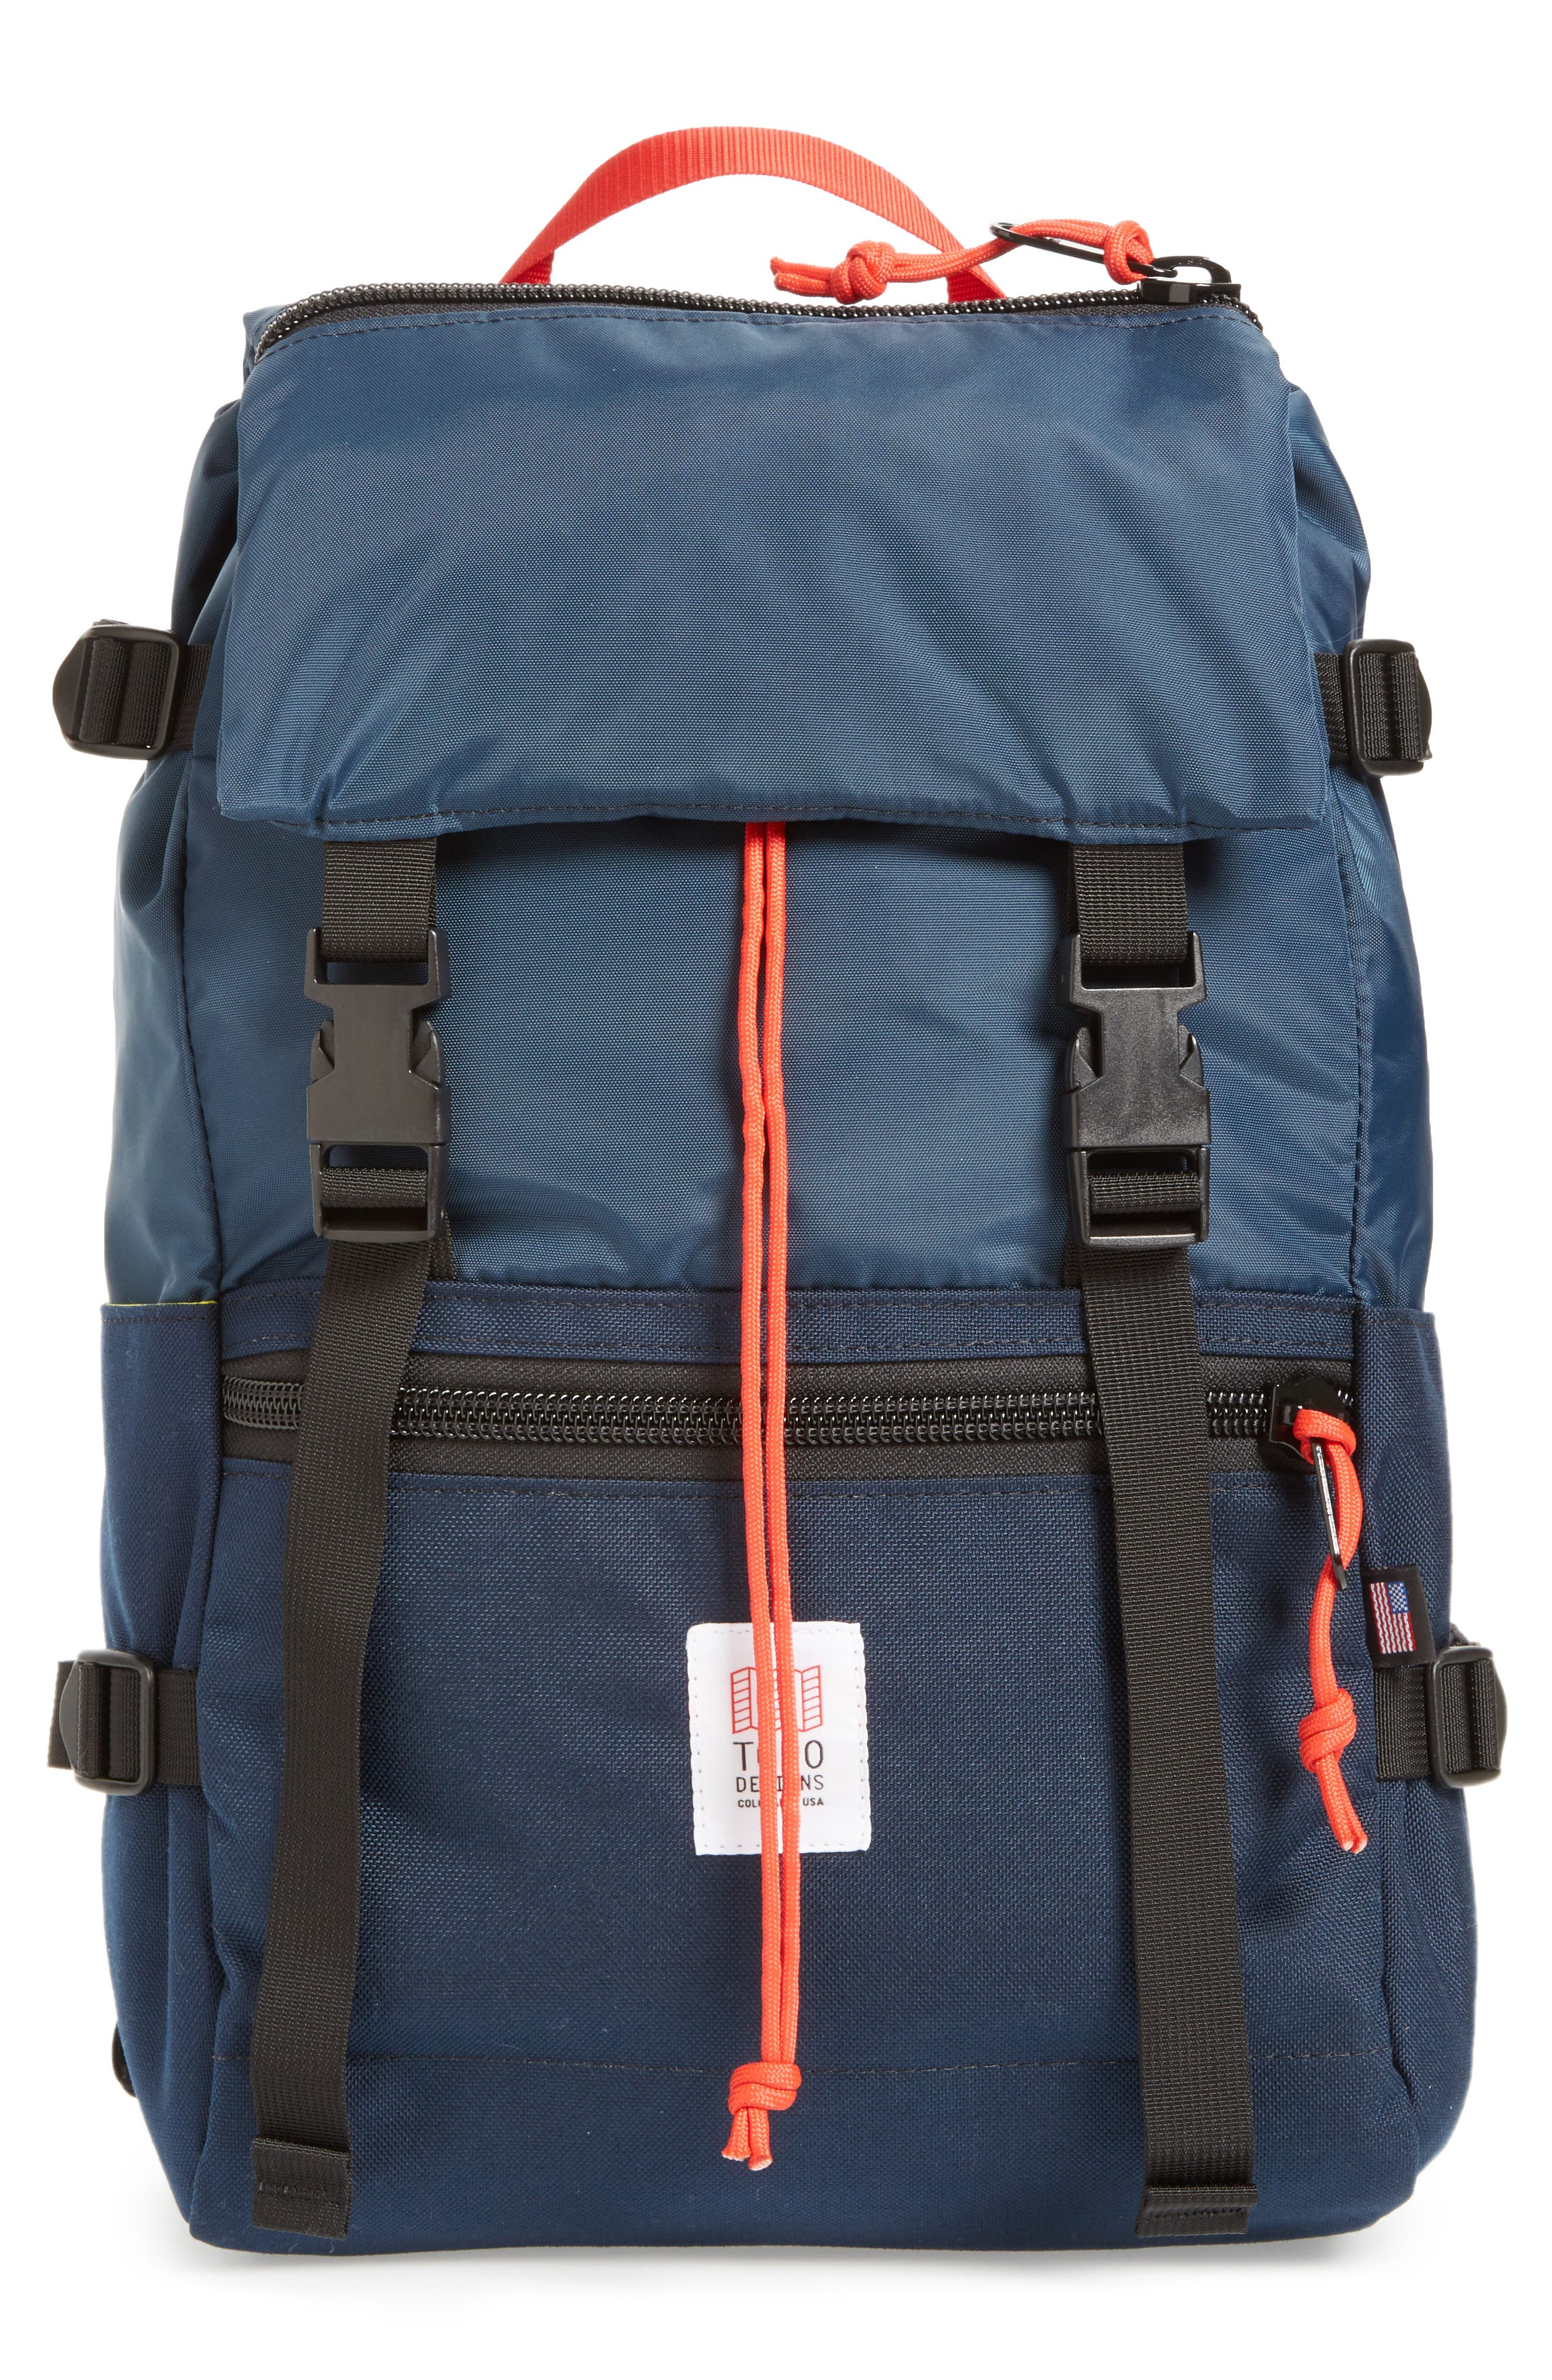 Rover Backpack,                         Main,                         color, NAVY